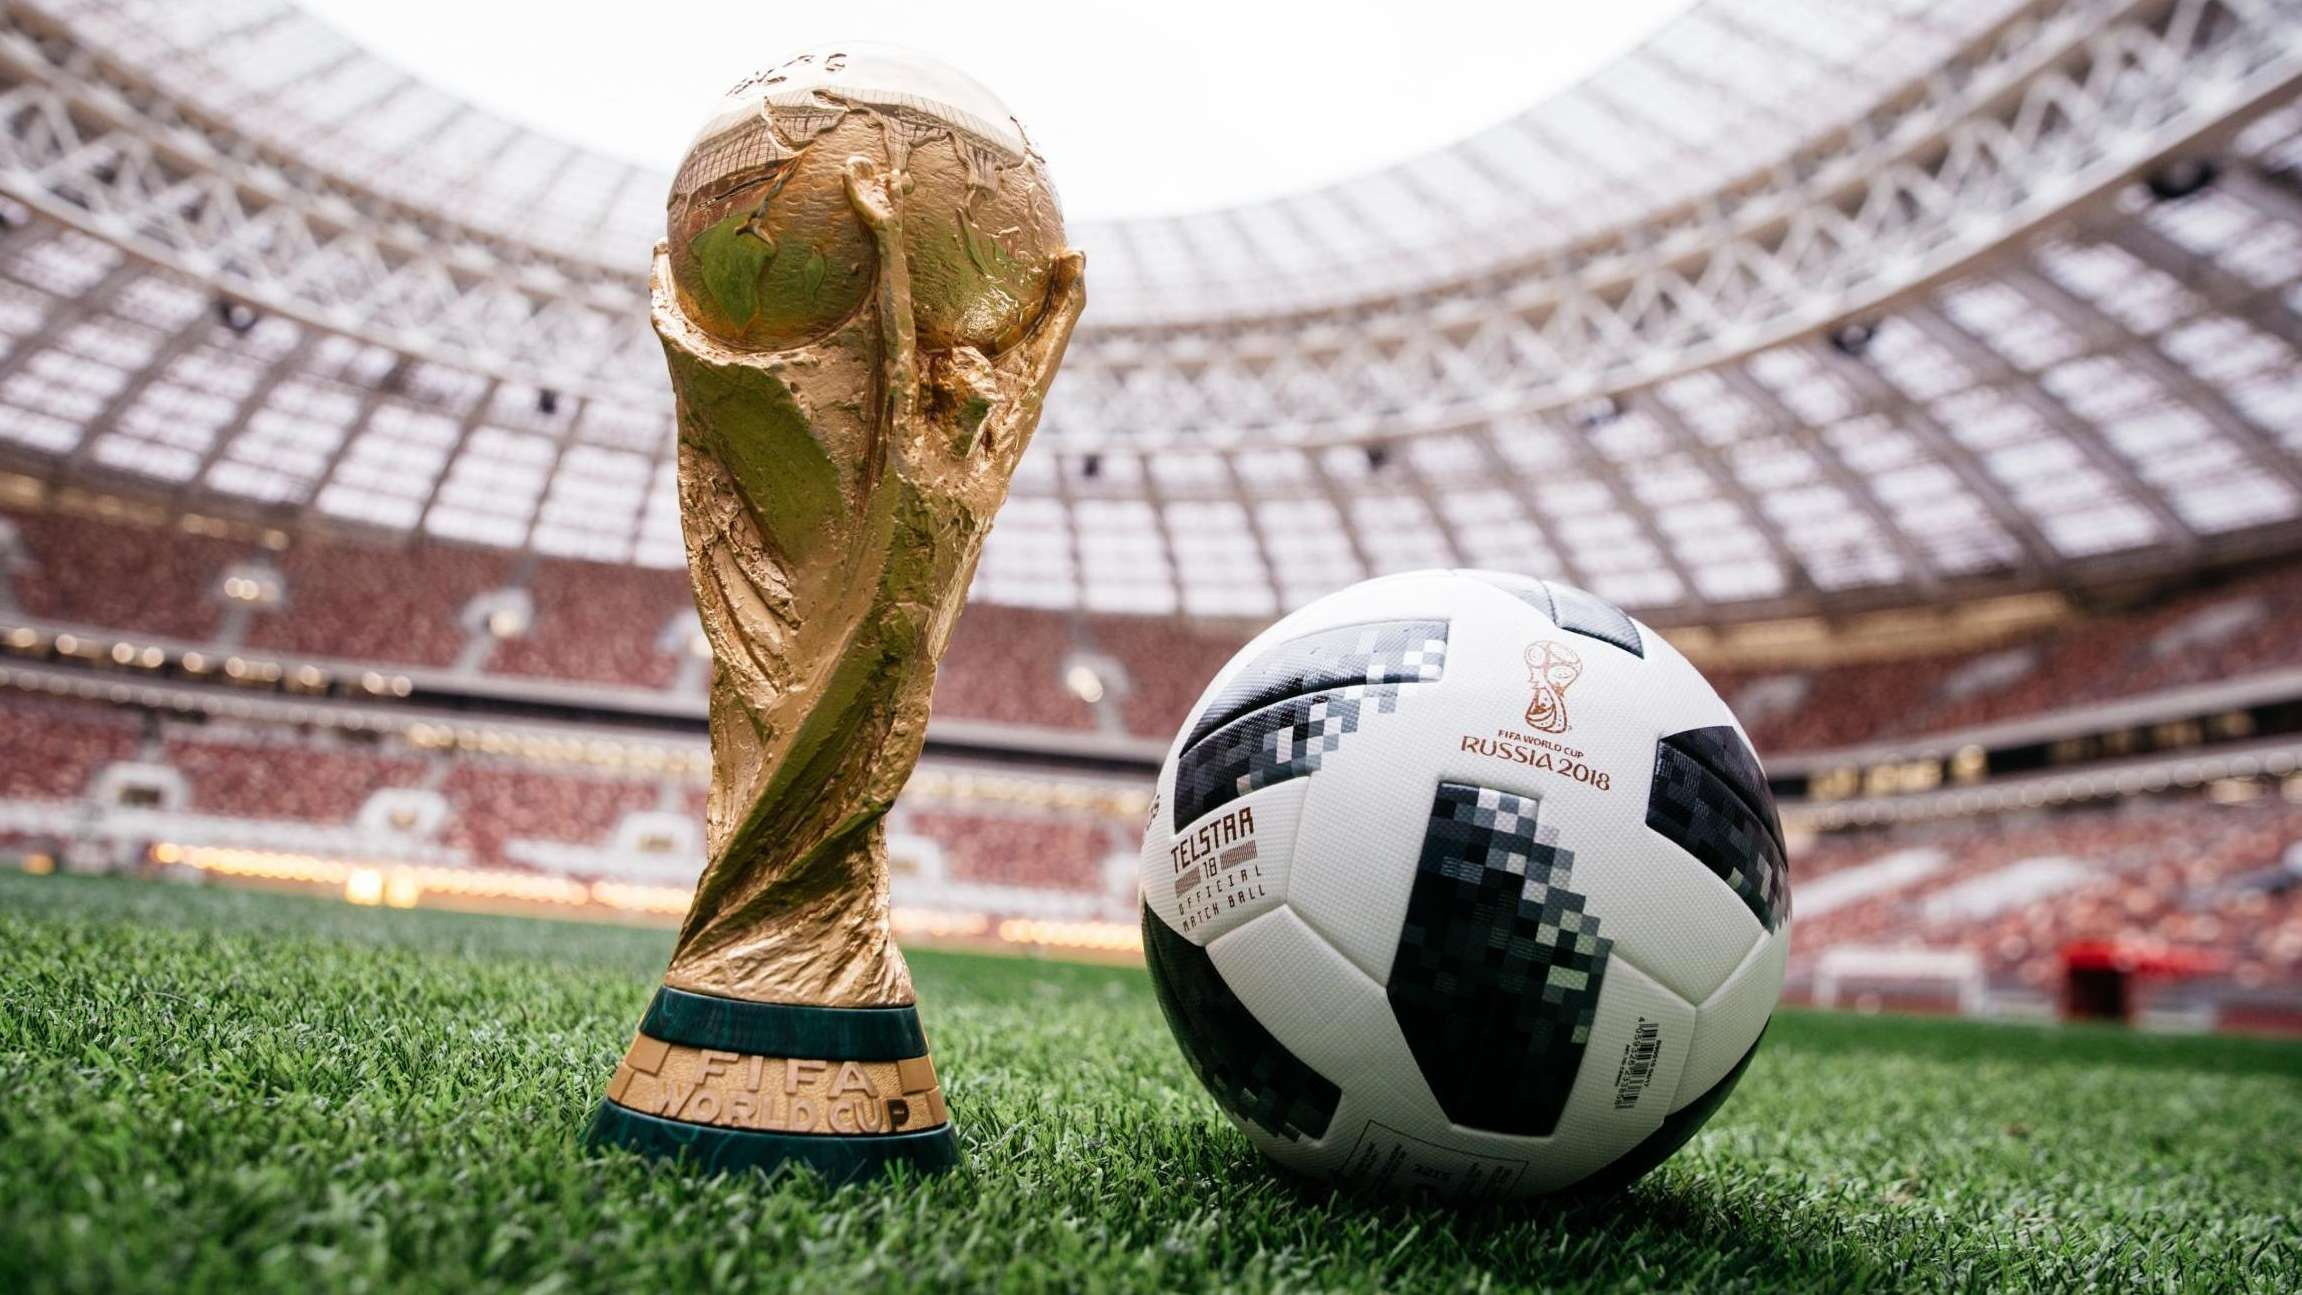 Smart Affiliate Marketing. A FIFA World Cup 2018 Case Study